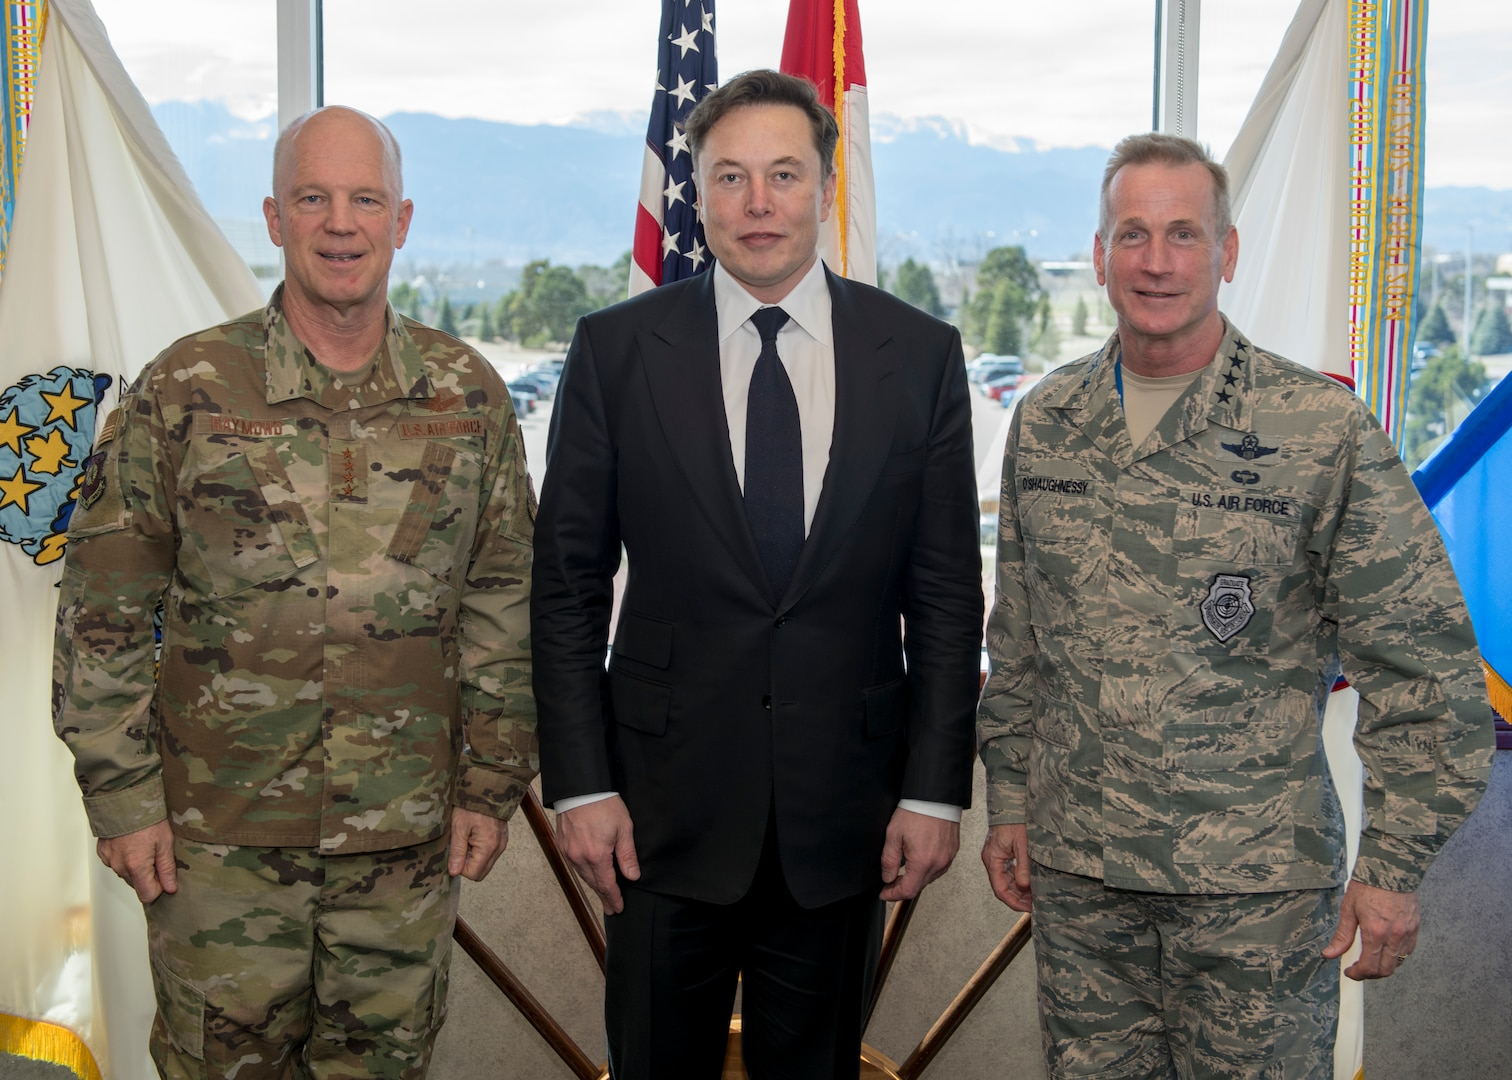 SpaceX CEO Elon Musk (center), the Commander, Air Force Space Command, and Joint Force Space Component Commander, Gen. Jay Raymond (left), and the Commander of the North American Aerospace Defense Command and U.S. Northern Command, U.S. Air Force General Terrence J. O'Shaughnessy pose for a photo in the command's headquarters in Colorado Springs, Colorado, April 15, 2019. During Musk's visit, he participated in conversations and round table briefings about future space operations and homeland defense innovation.